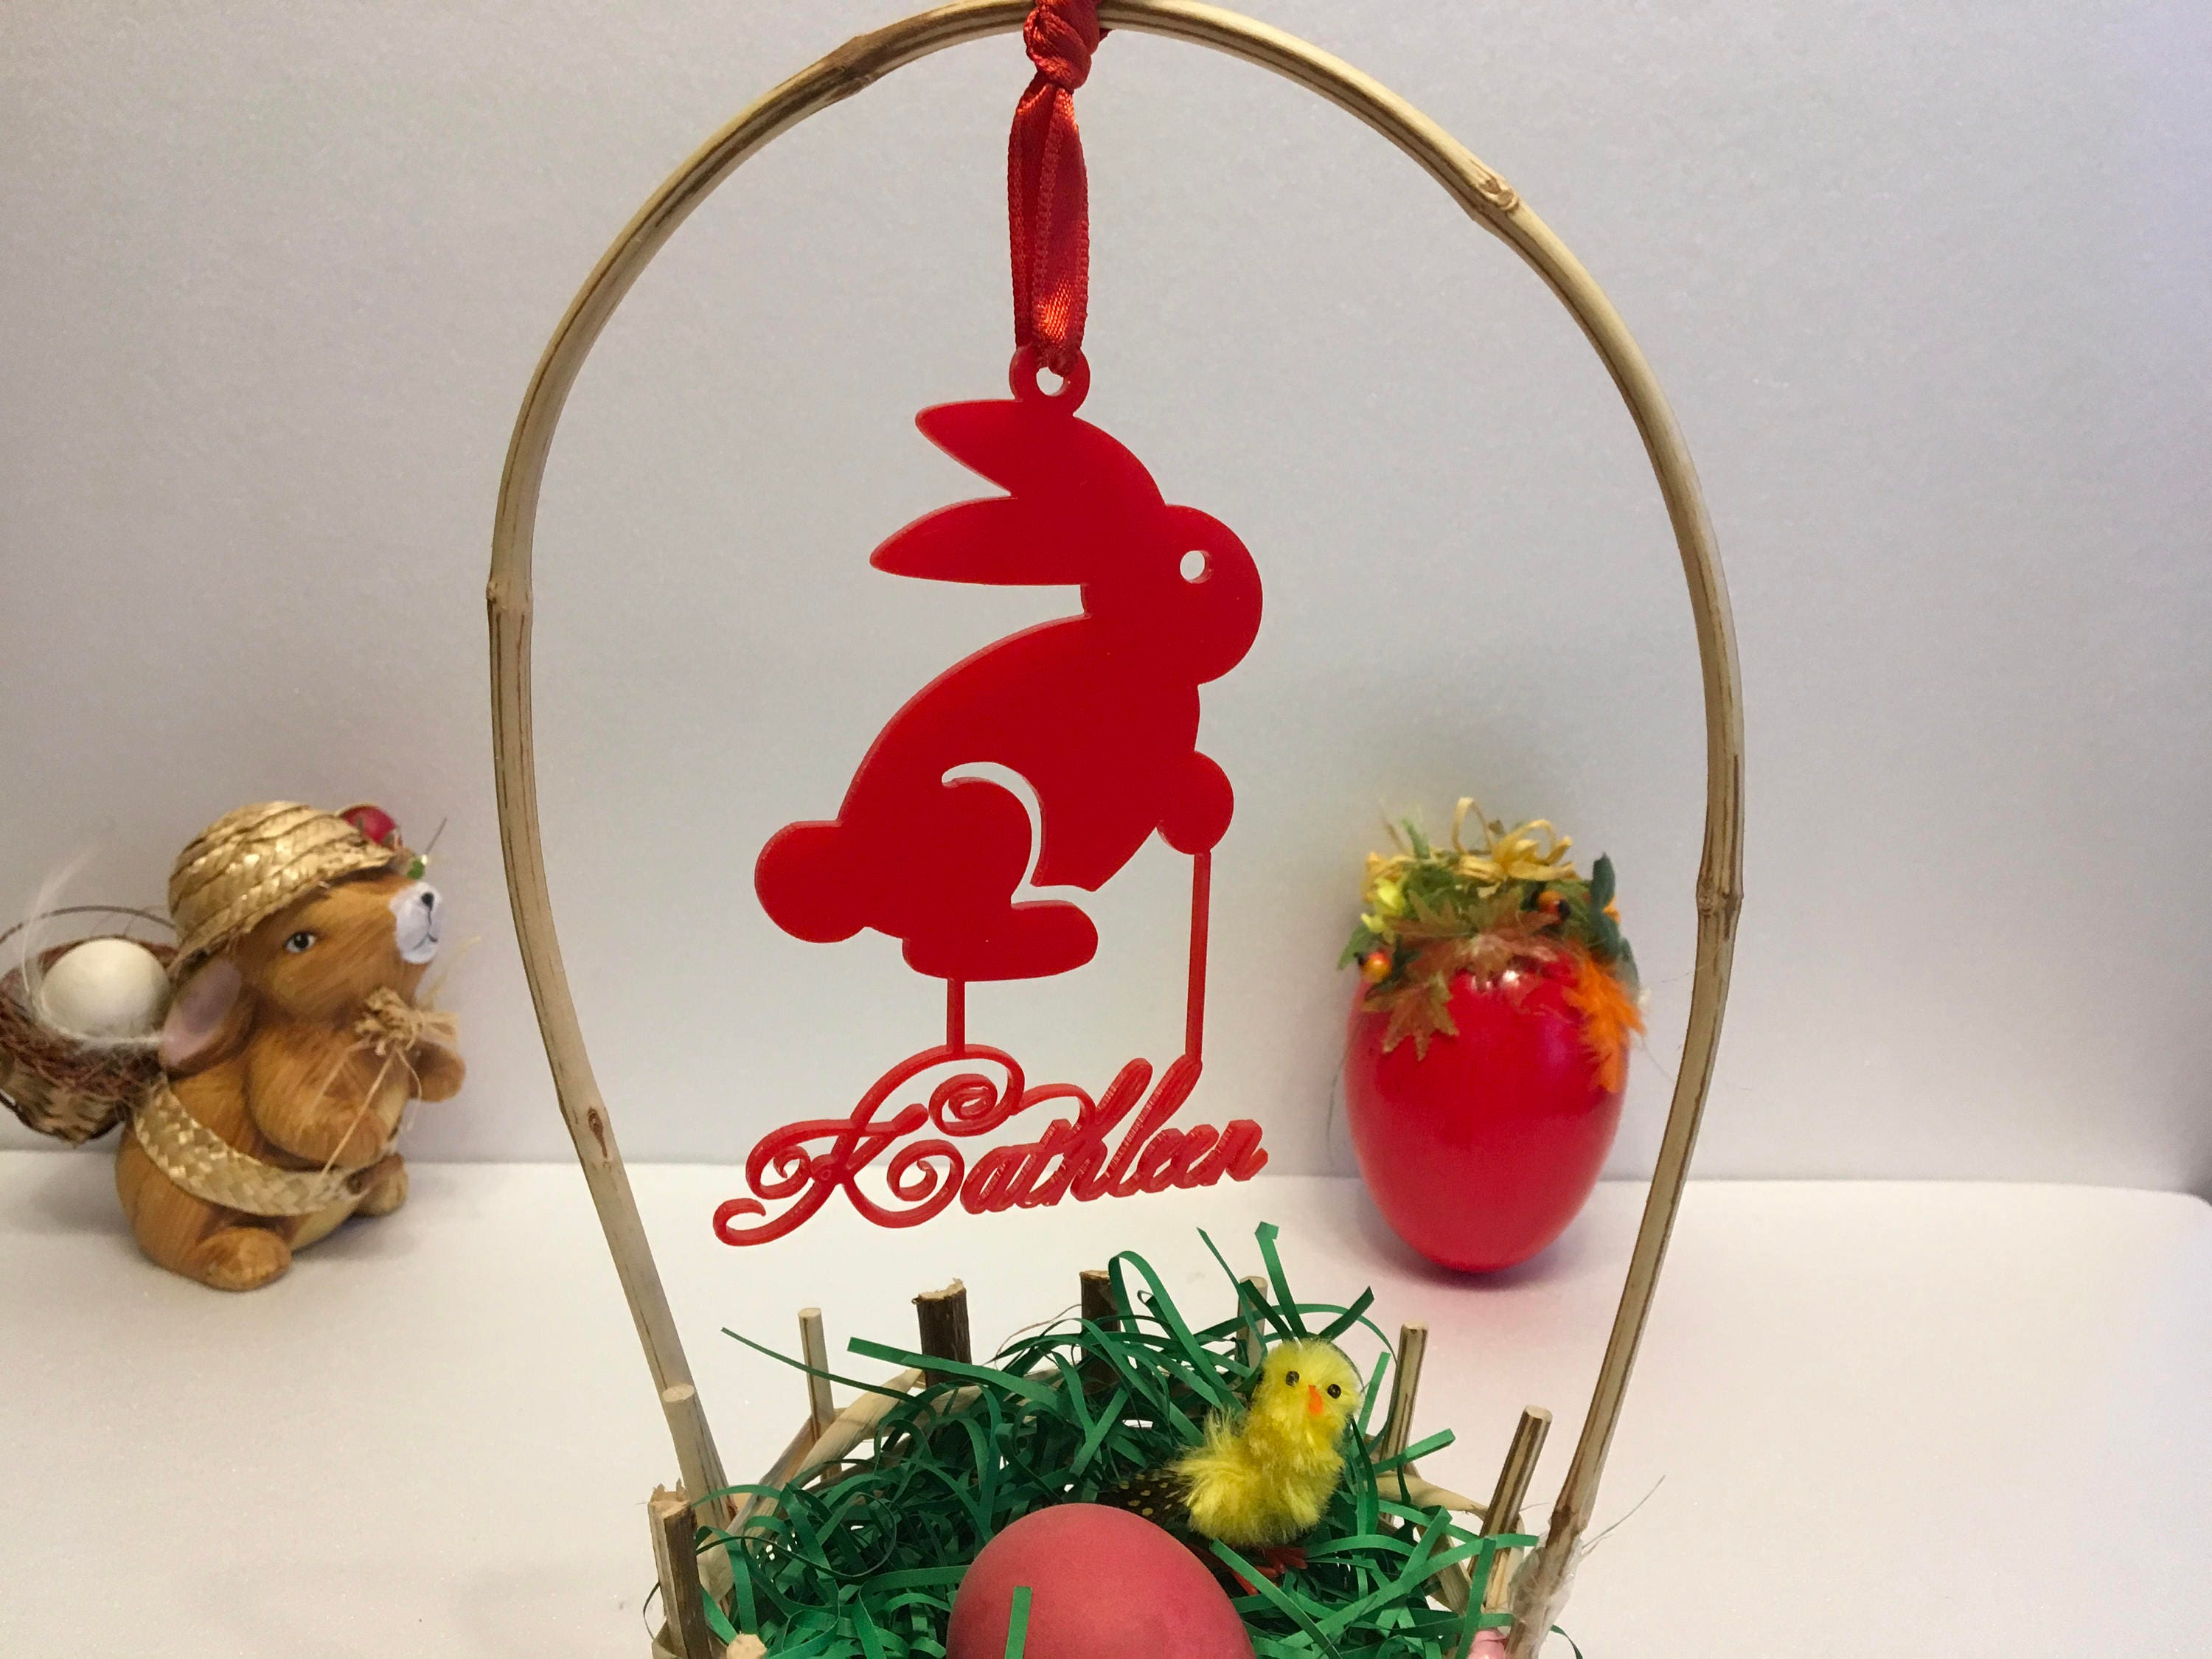 Personalized easter basket tie on personalised bunny ornament red personalized easter basket tie on personalised bunny ornament red rabbit custom family gift tags laser cut acrylic bunny babys first easter negle Image collections